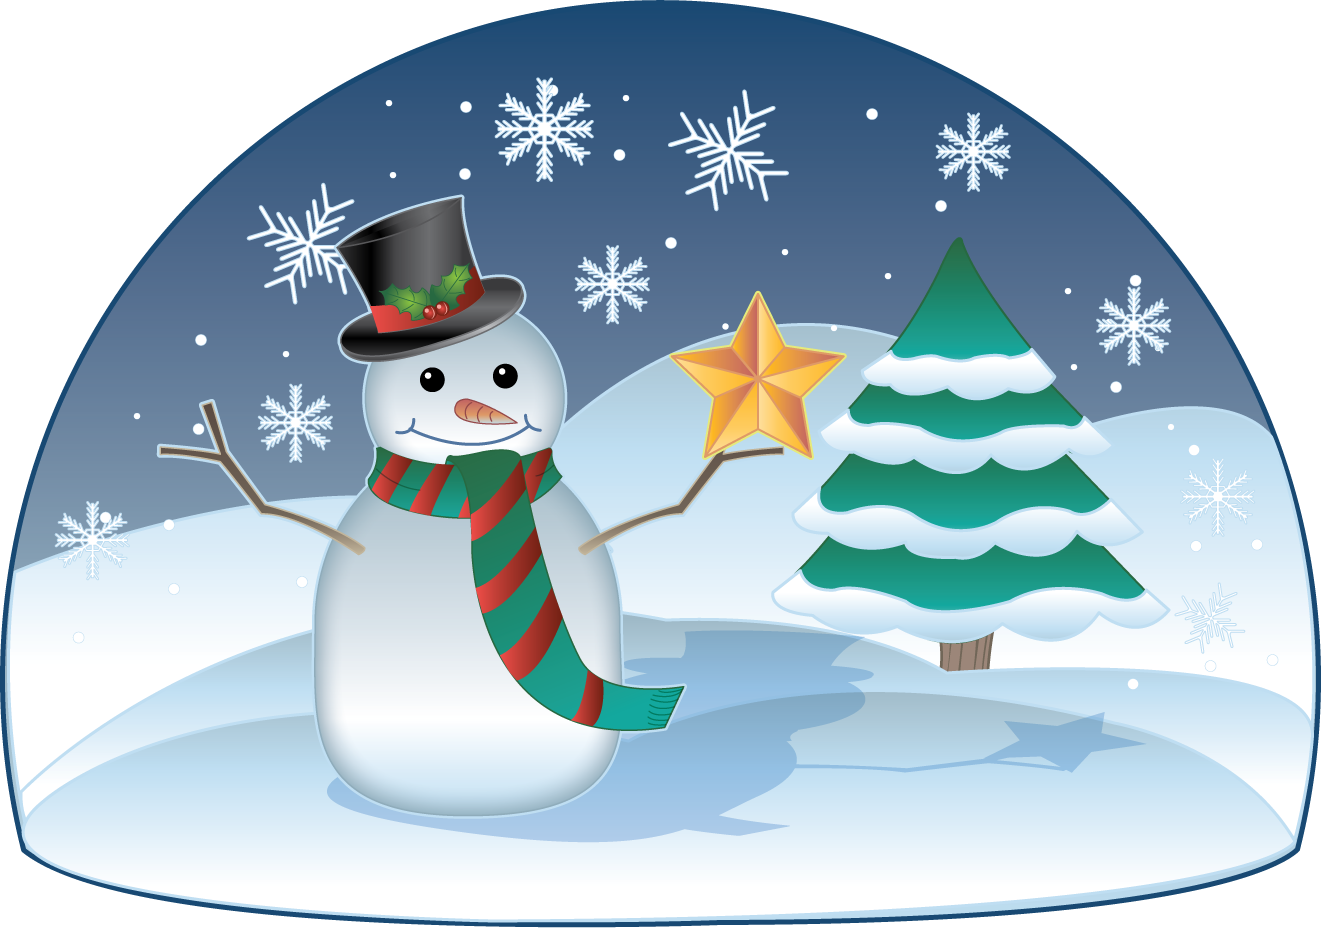 Free Clip Art Holiday Clip Art Christmas-Free Clip Art Holiday Clip Art Christmas Snowman In Winter-1